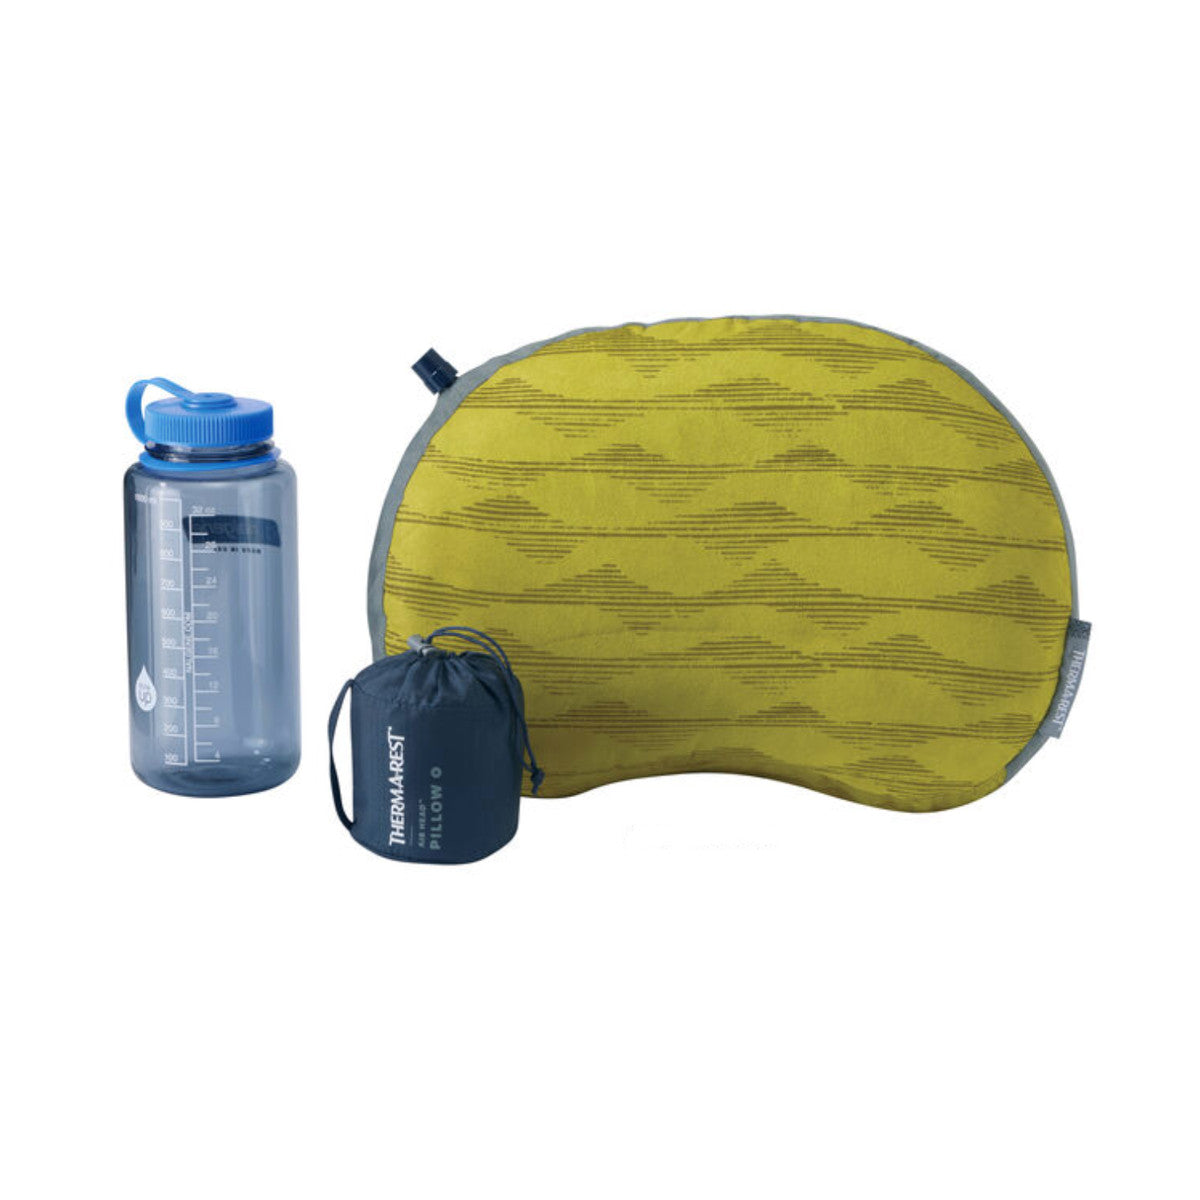 Thermarest Air Head in yellow next to nalgene